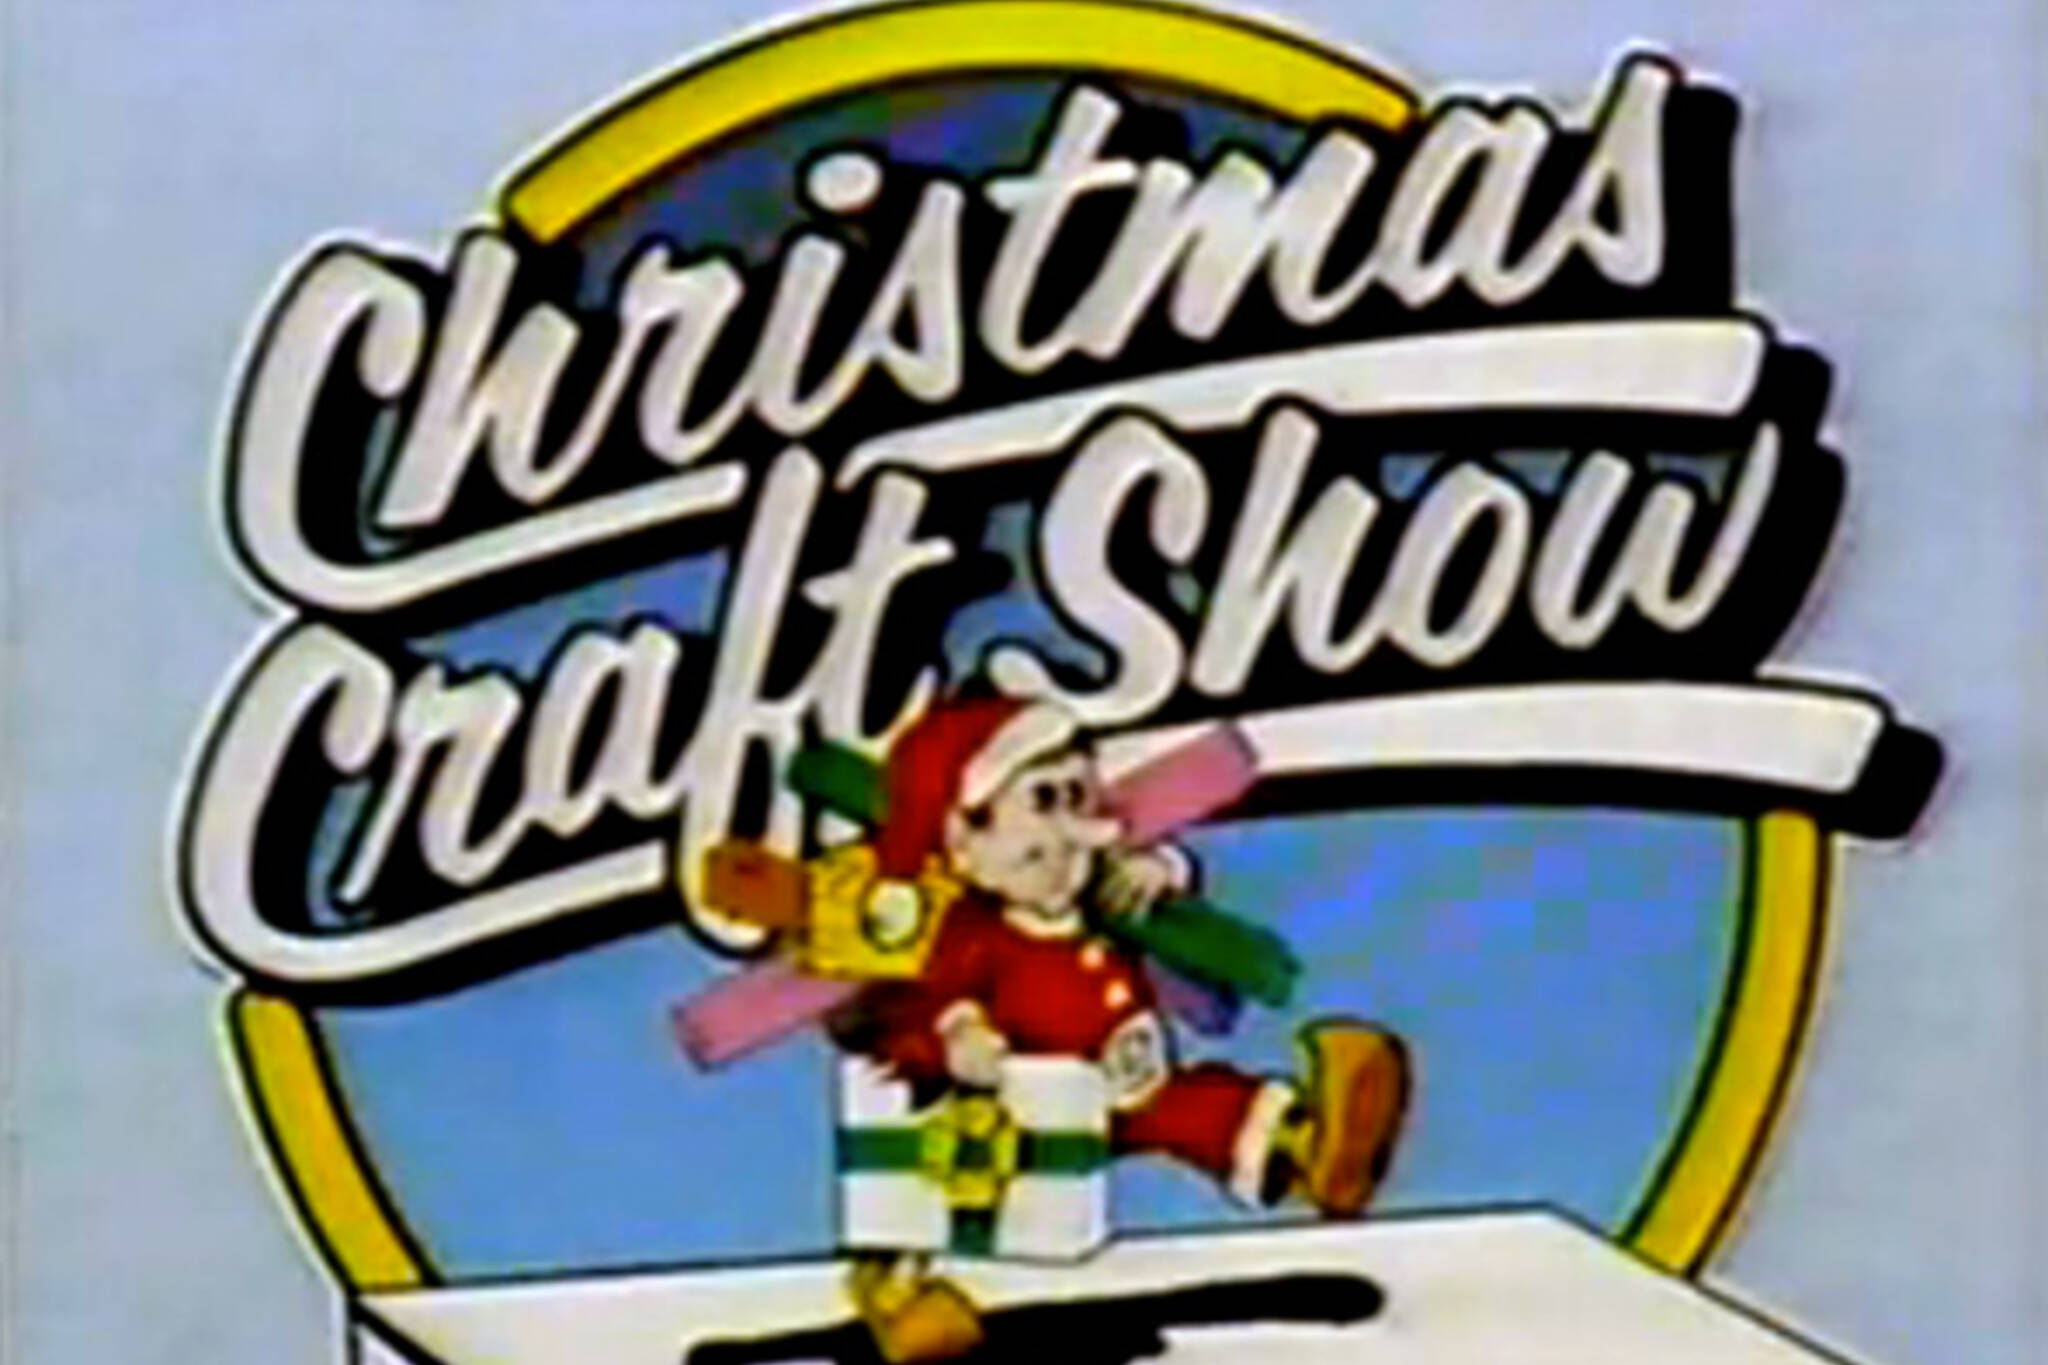 Vintage Toronto holiday Commercials